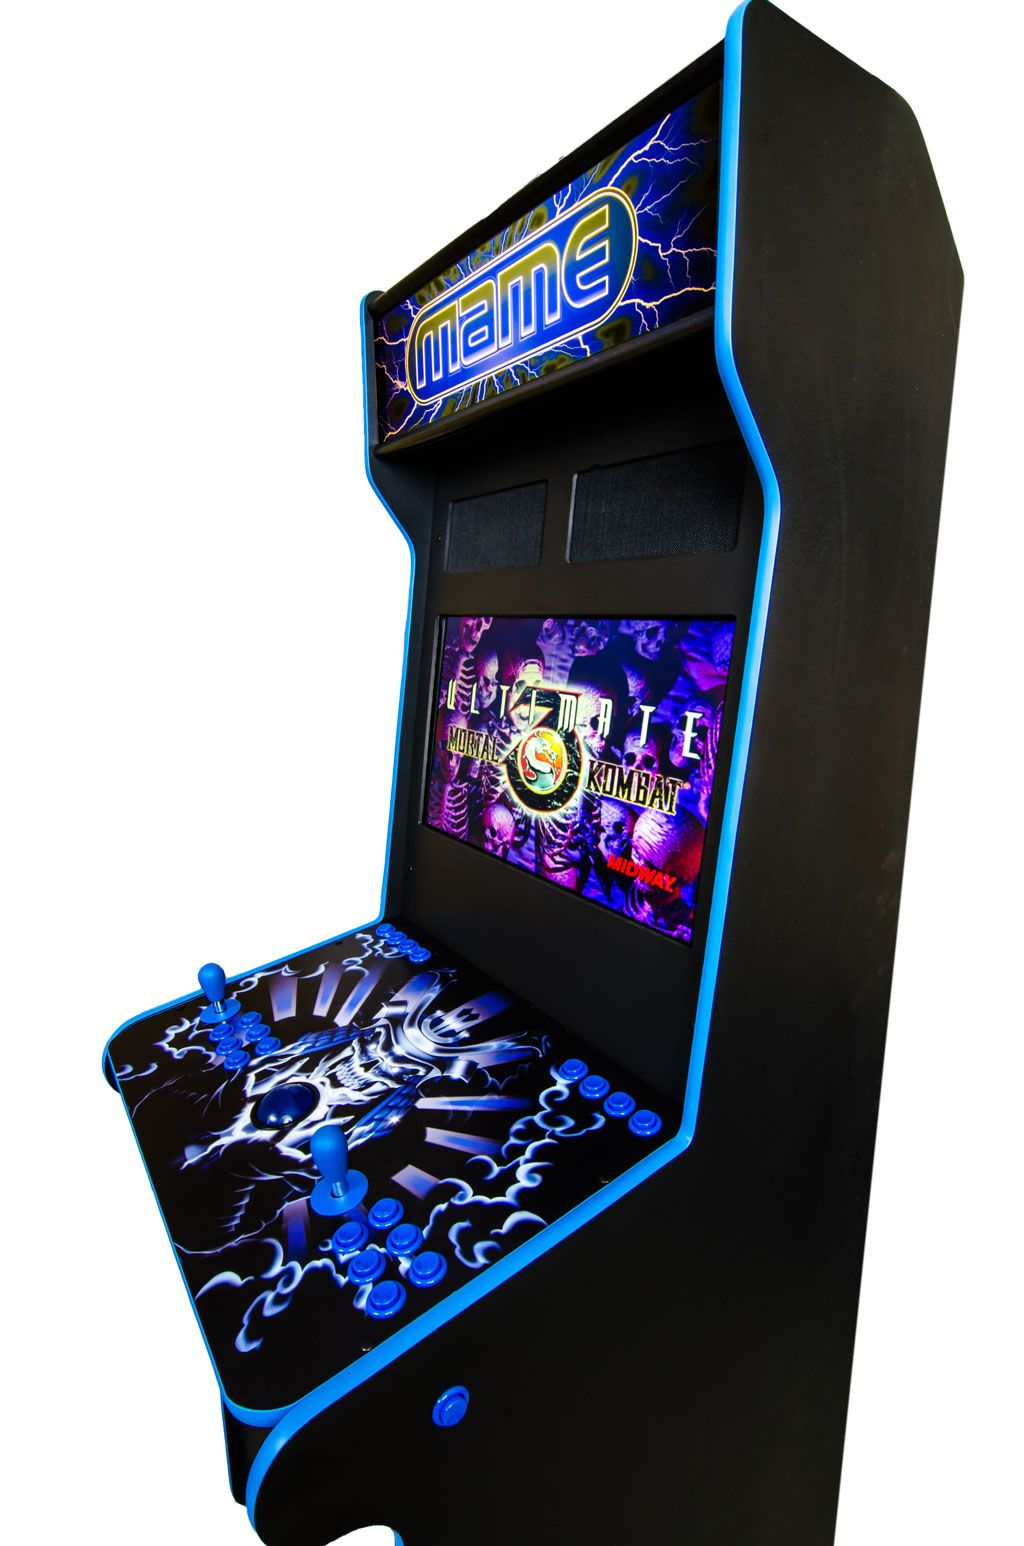 mame cabinet theme - Google Search   Arcade cabinet inspiration ...